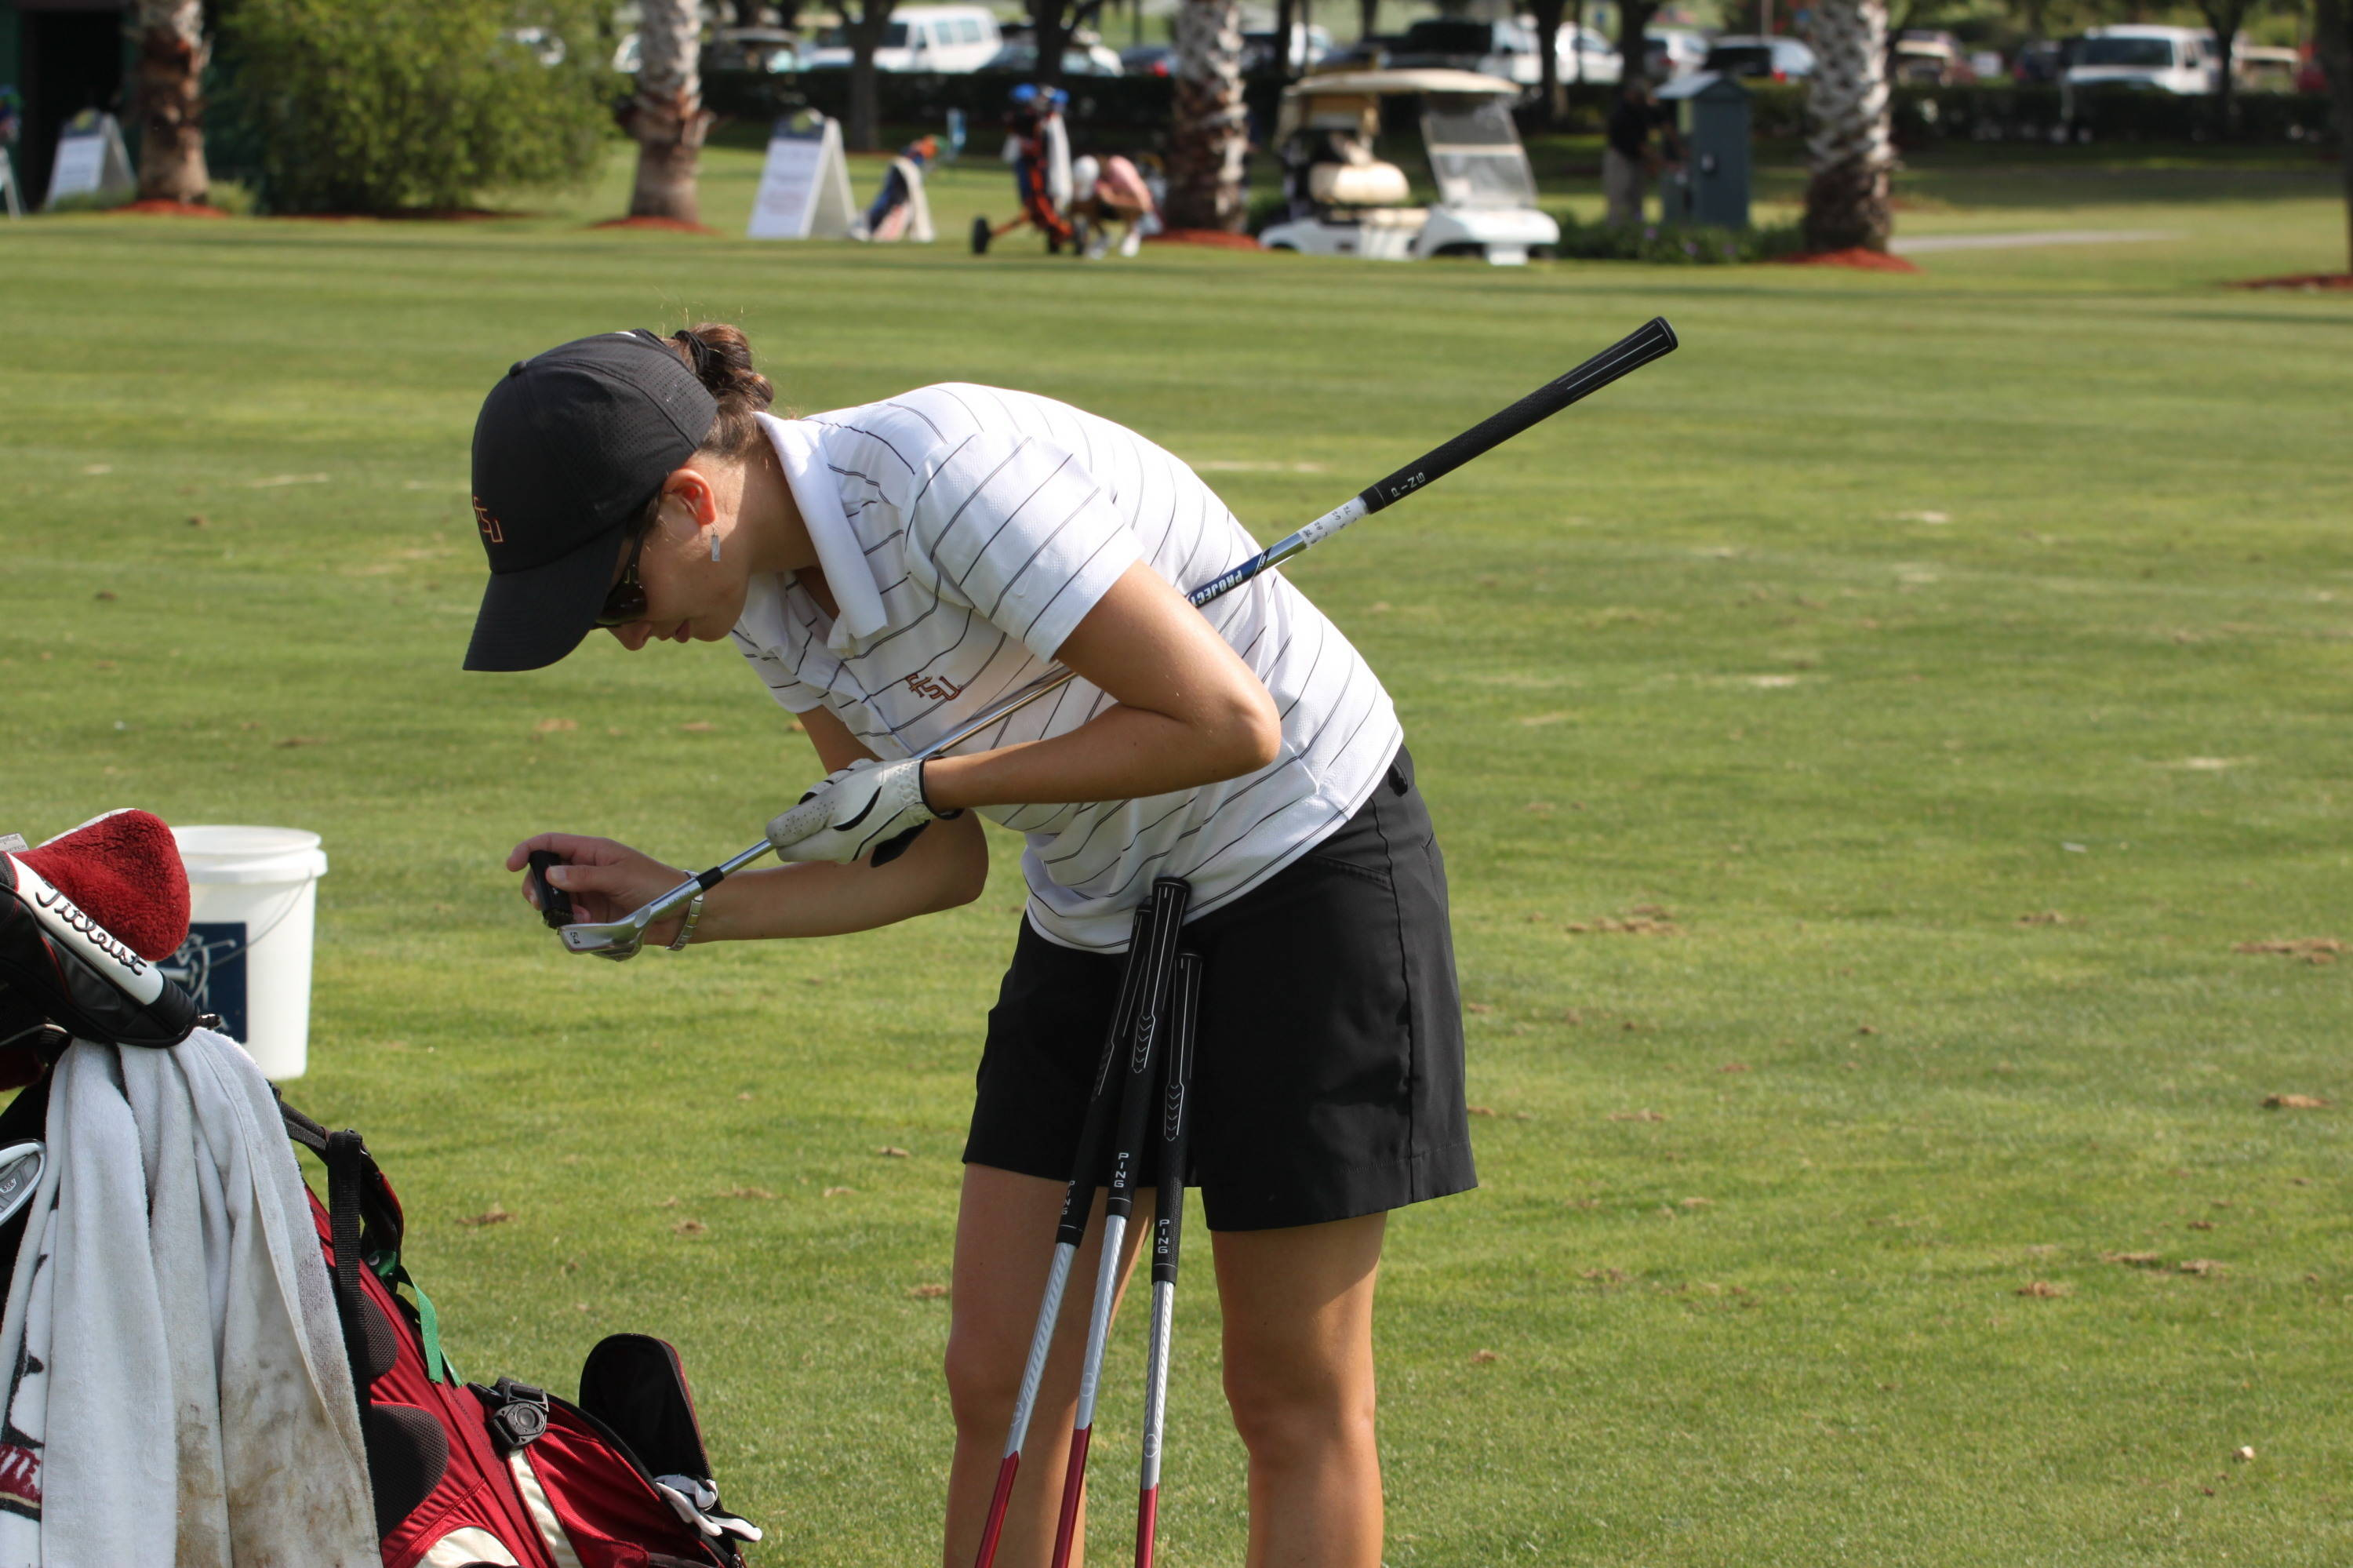 2011 NCAA Women's Golf - Senior Macarena Silva earned her degree in marketing from Florida State on April 30.